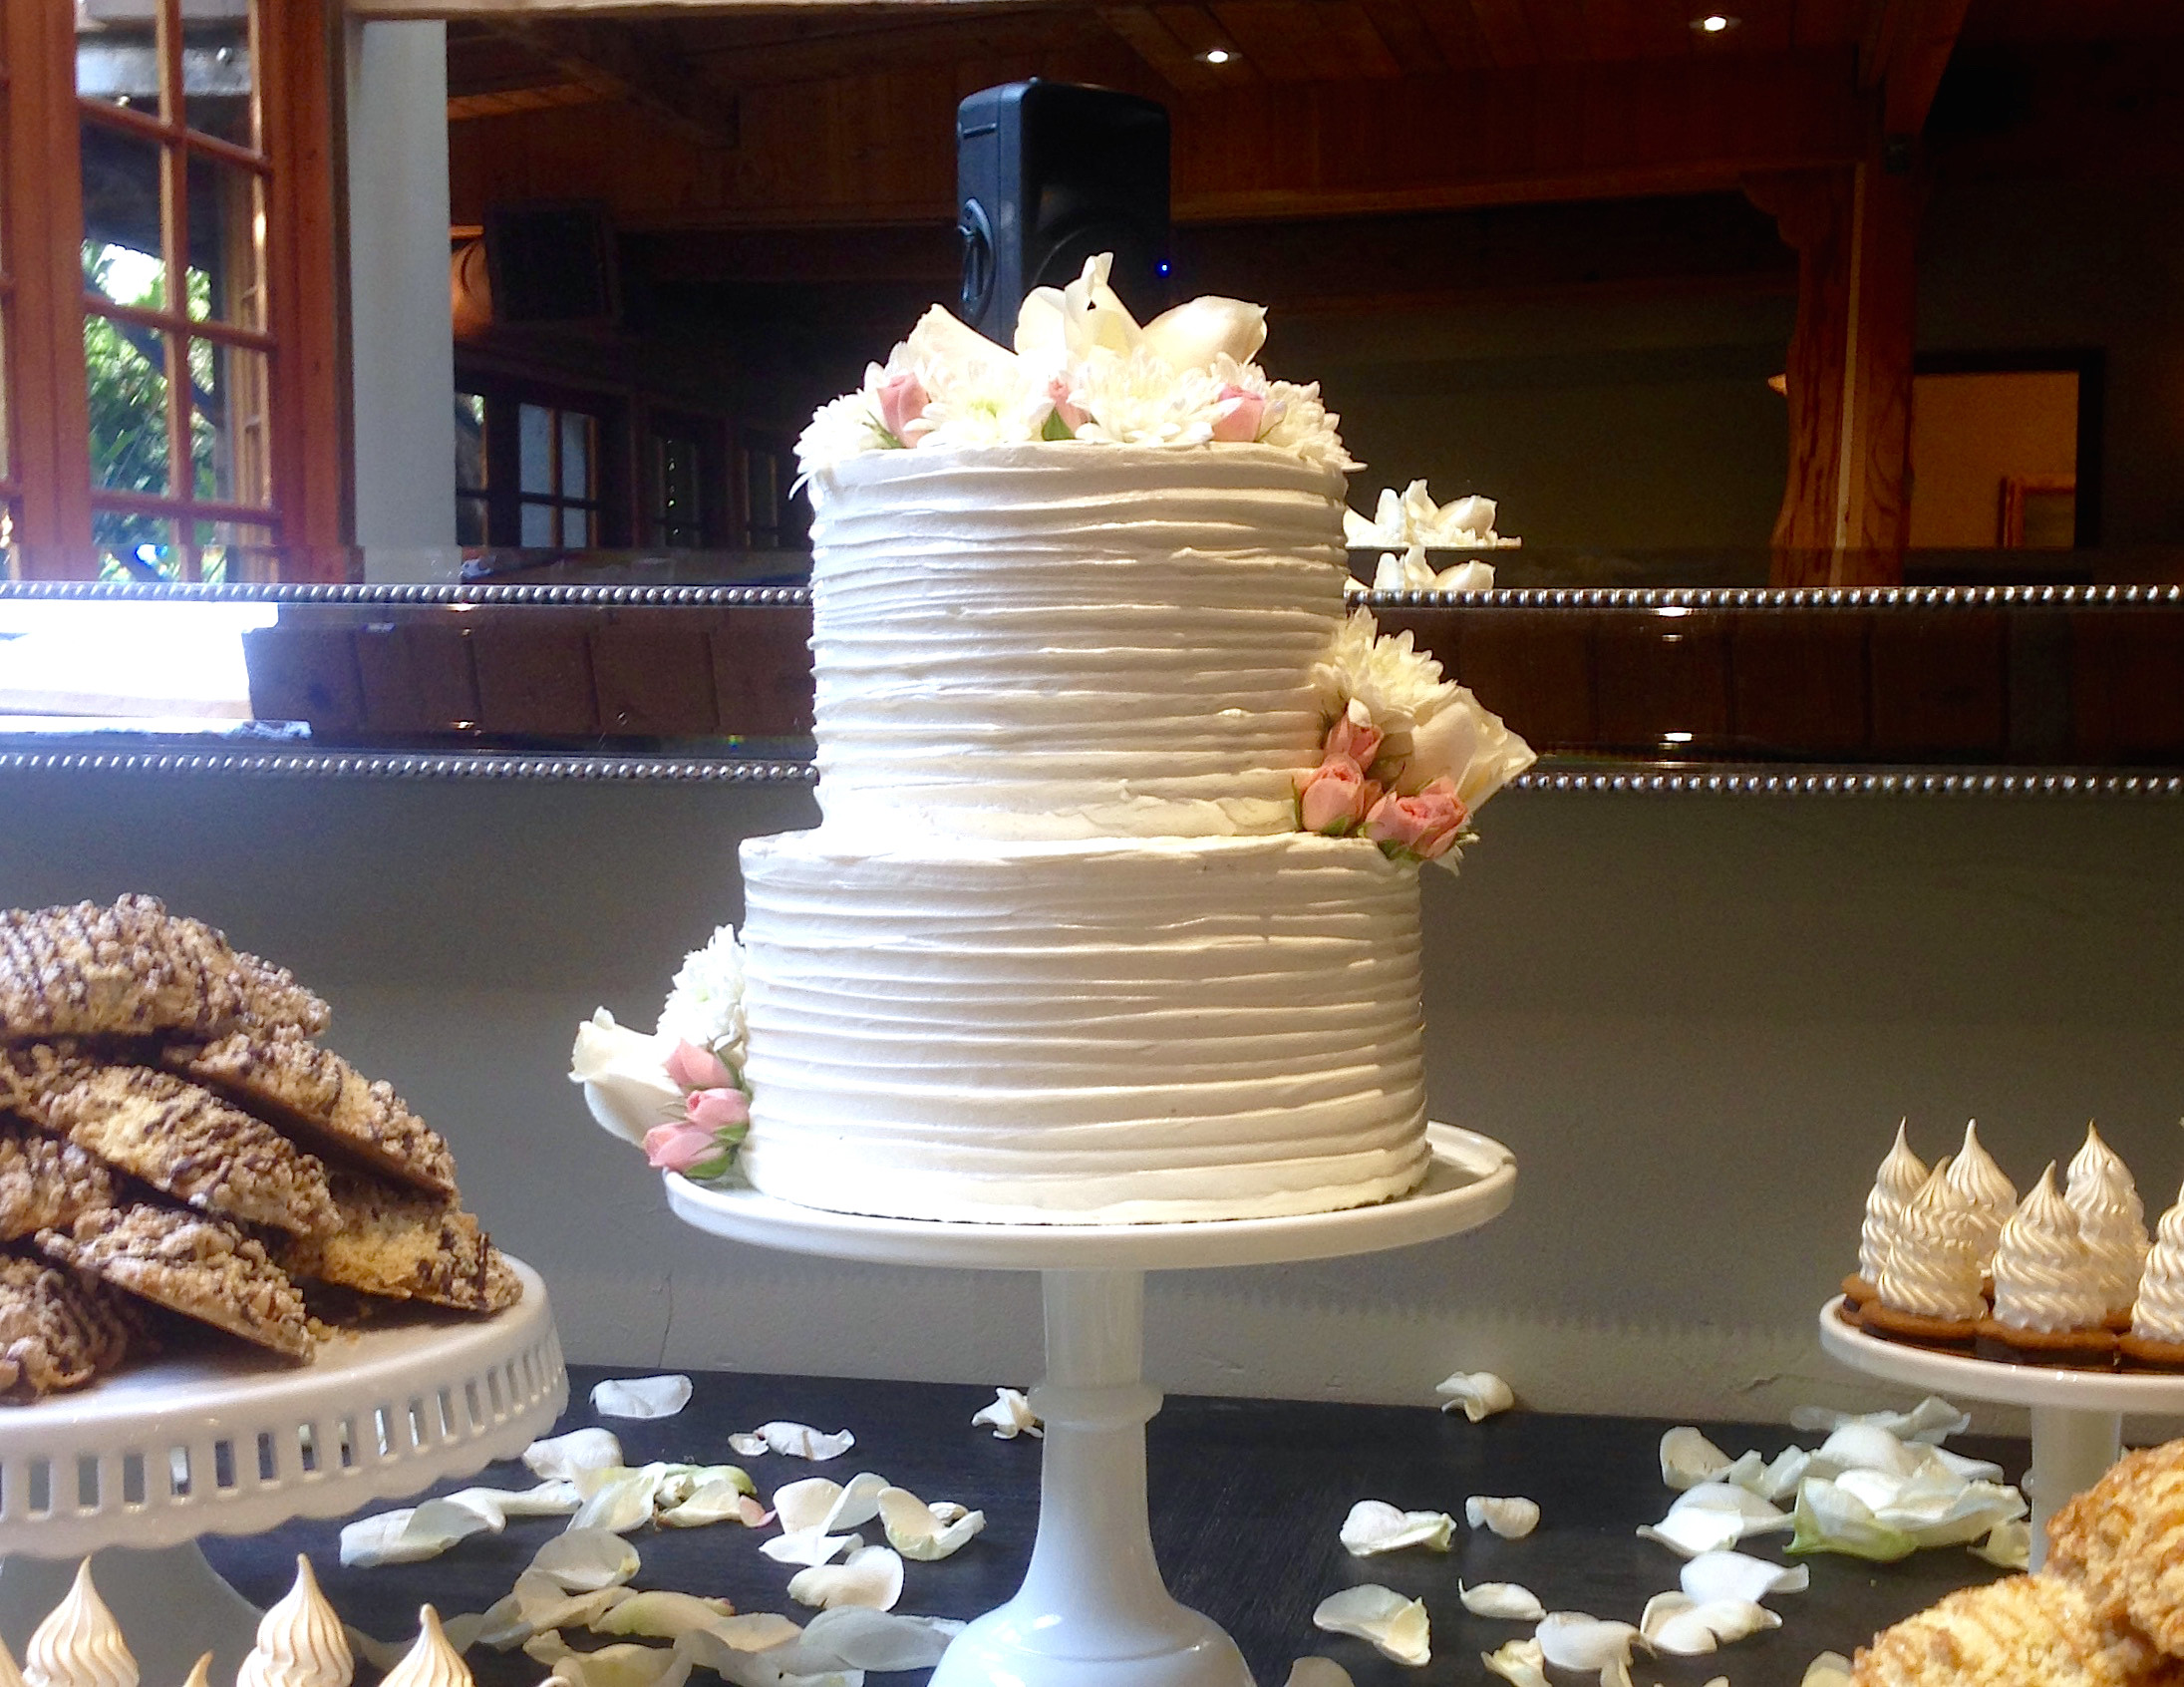 The Best Wedding Cakes  Best Places For Wedding Cakes In Los Angeles CBS Los Angeles